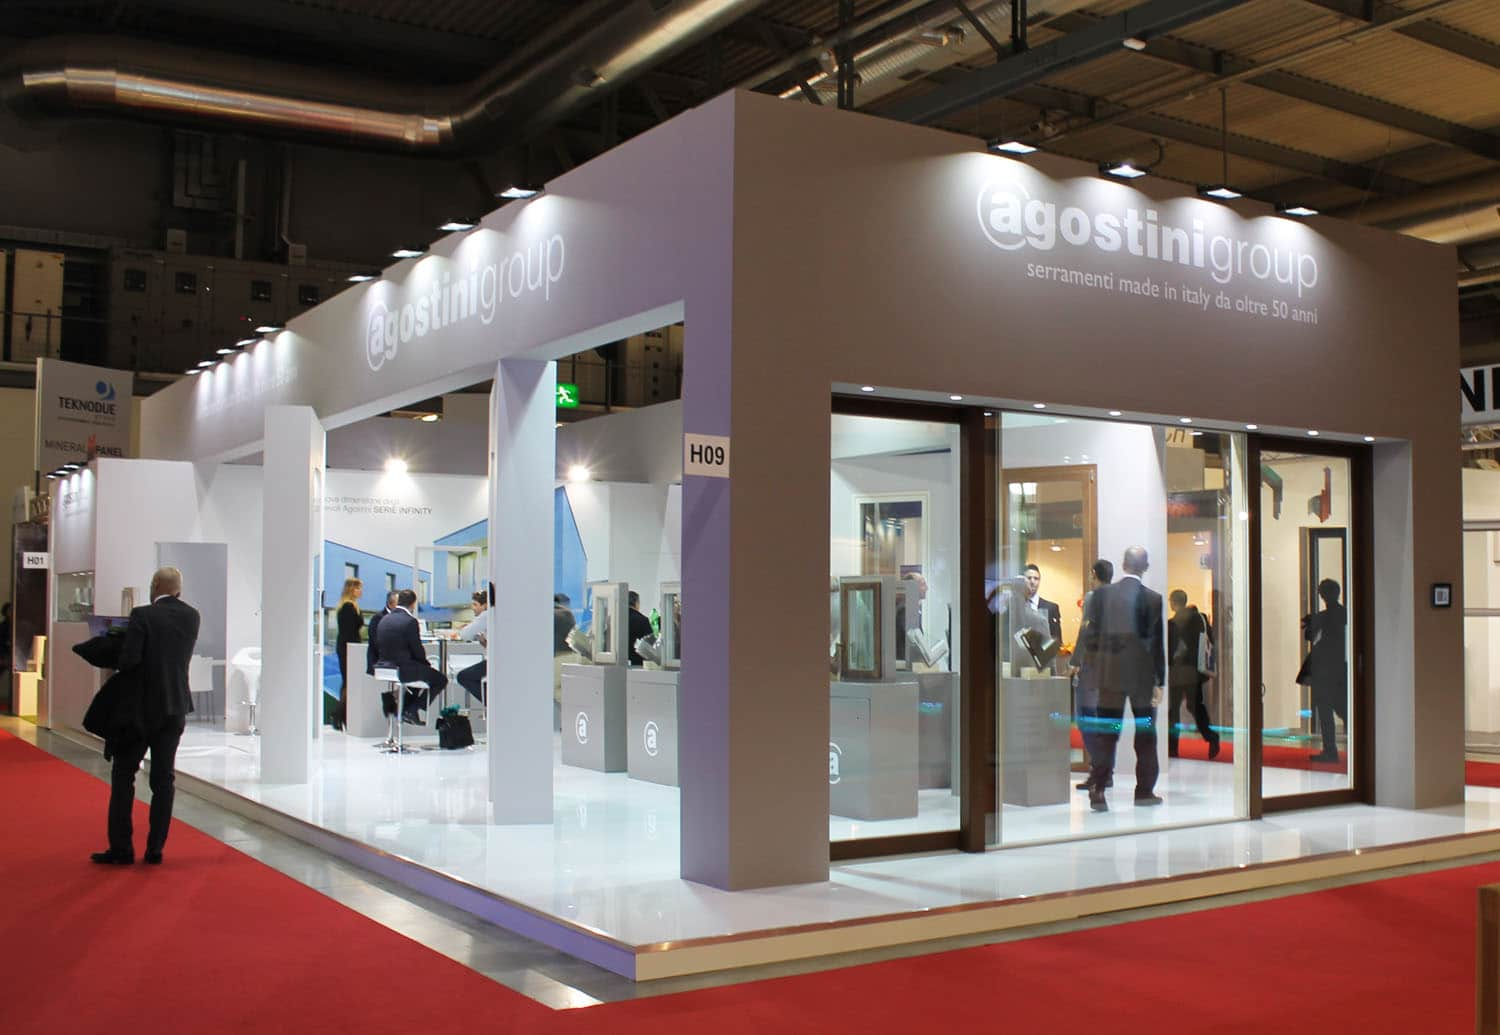 Allestimenti fieristici Milano MADE EXPO Stand Agostini Group